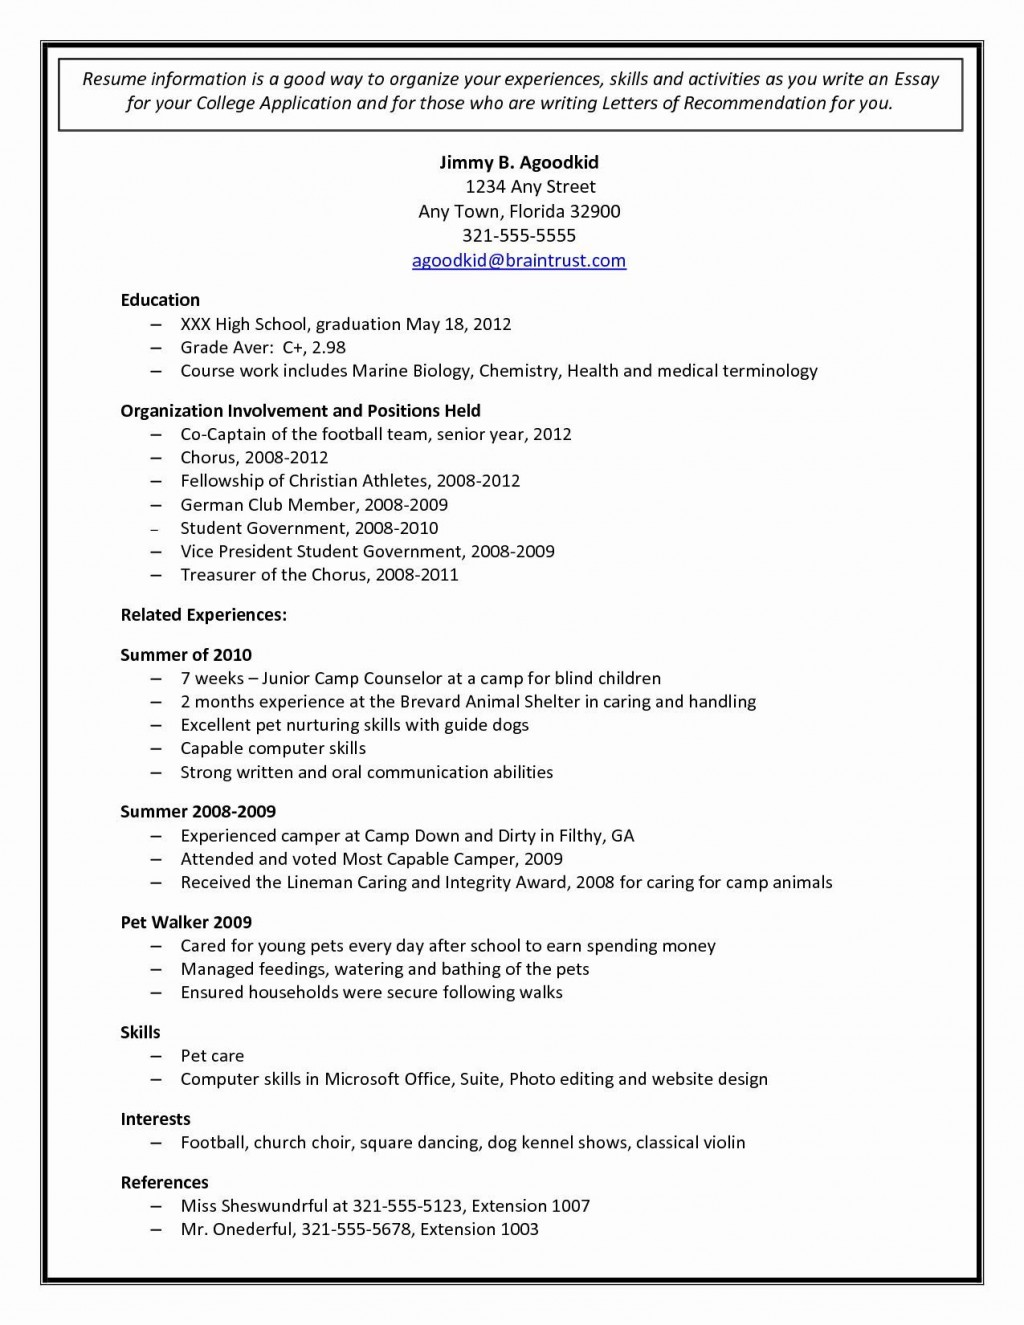 000 Surprising College Admission Resume Template Sample  Application Microsoft Word Free CvLarge